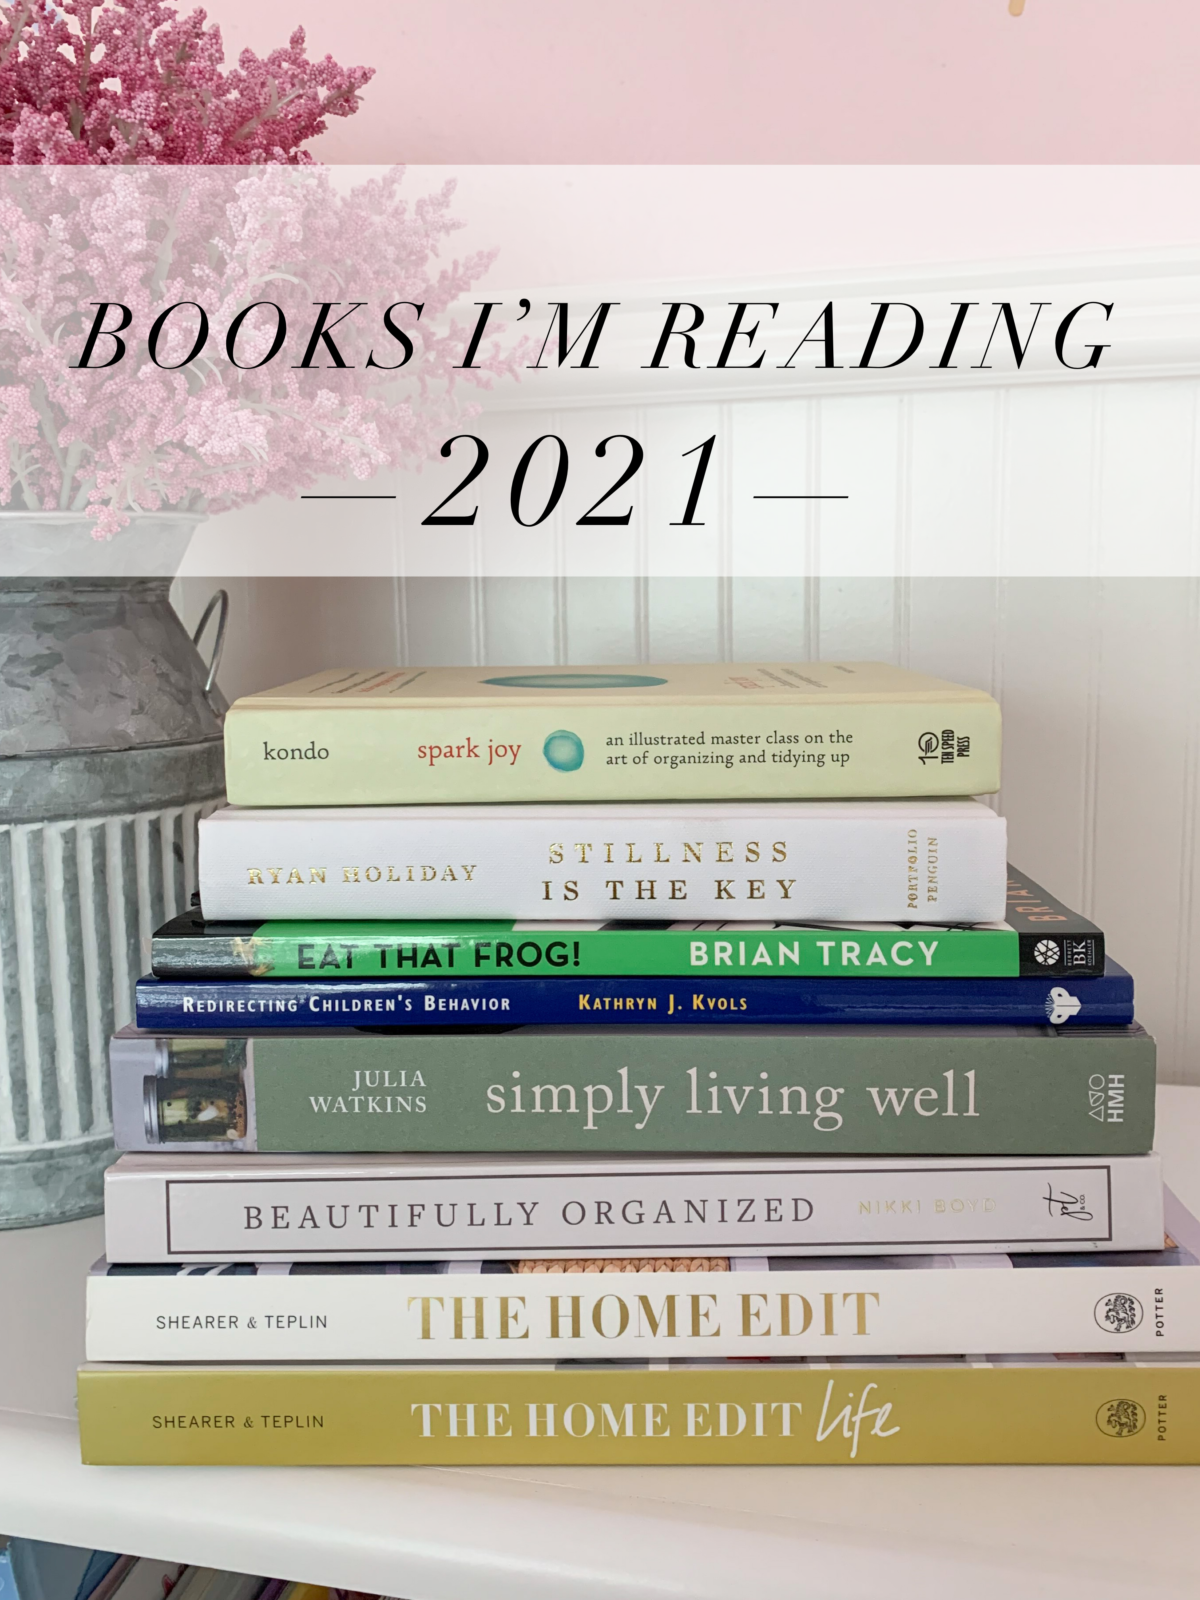 Books I'm Reading in 2021